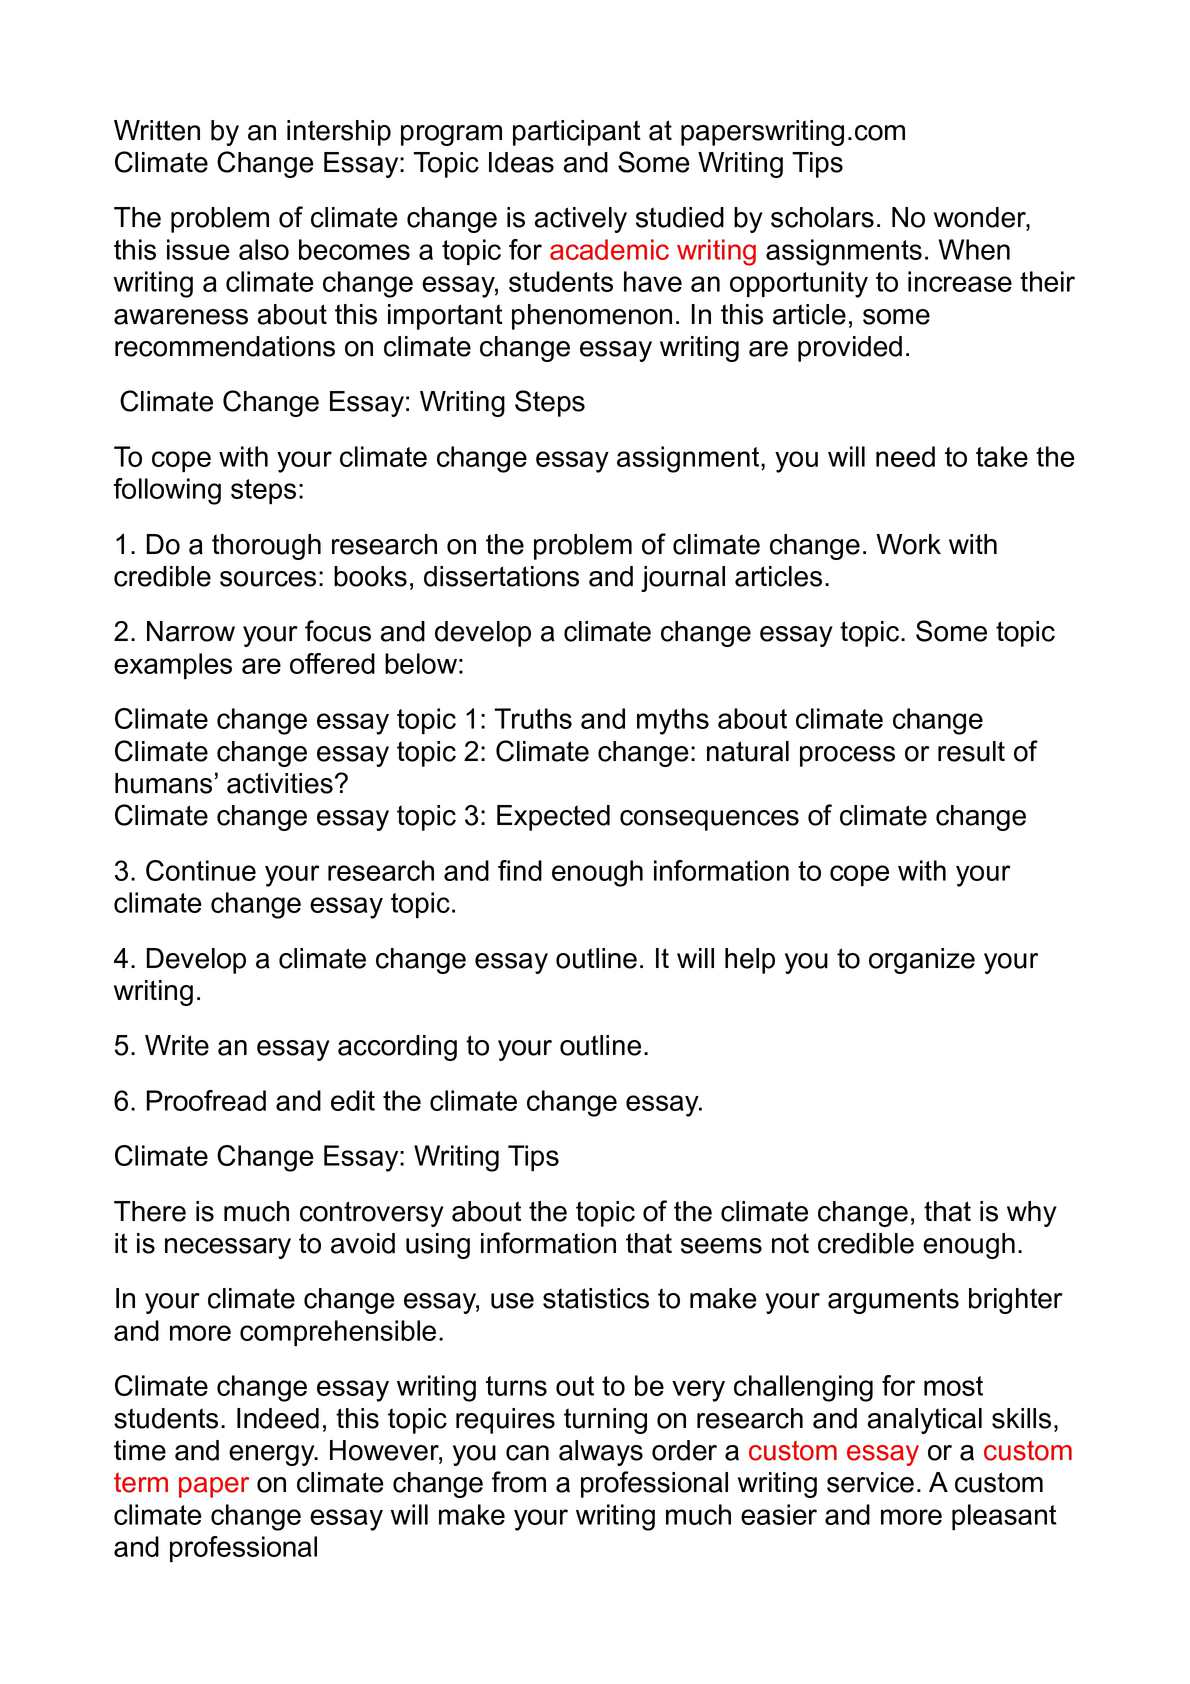 global warming essay for students a persuasive essay on global  essay for climate change calamatildecopyo climate change essay topic ideas and some writing tips